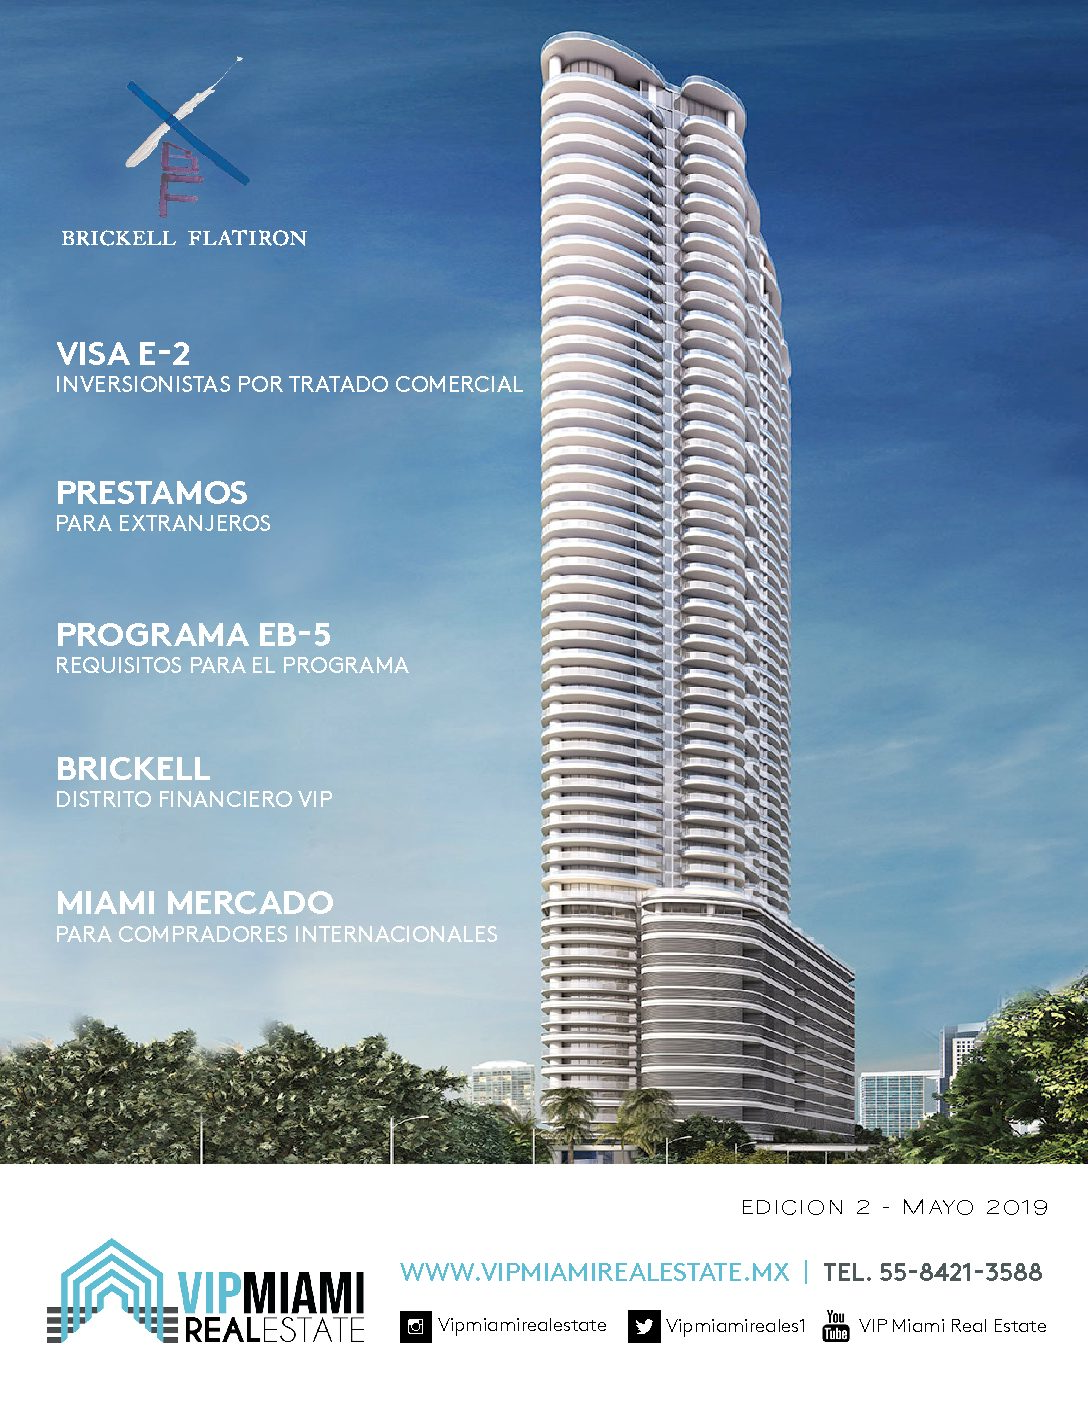 Revista digital Mayo 2019-VIP Miami Real Estate-Informacion sobre inversiones inmobiliarias en Miami, Florida.